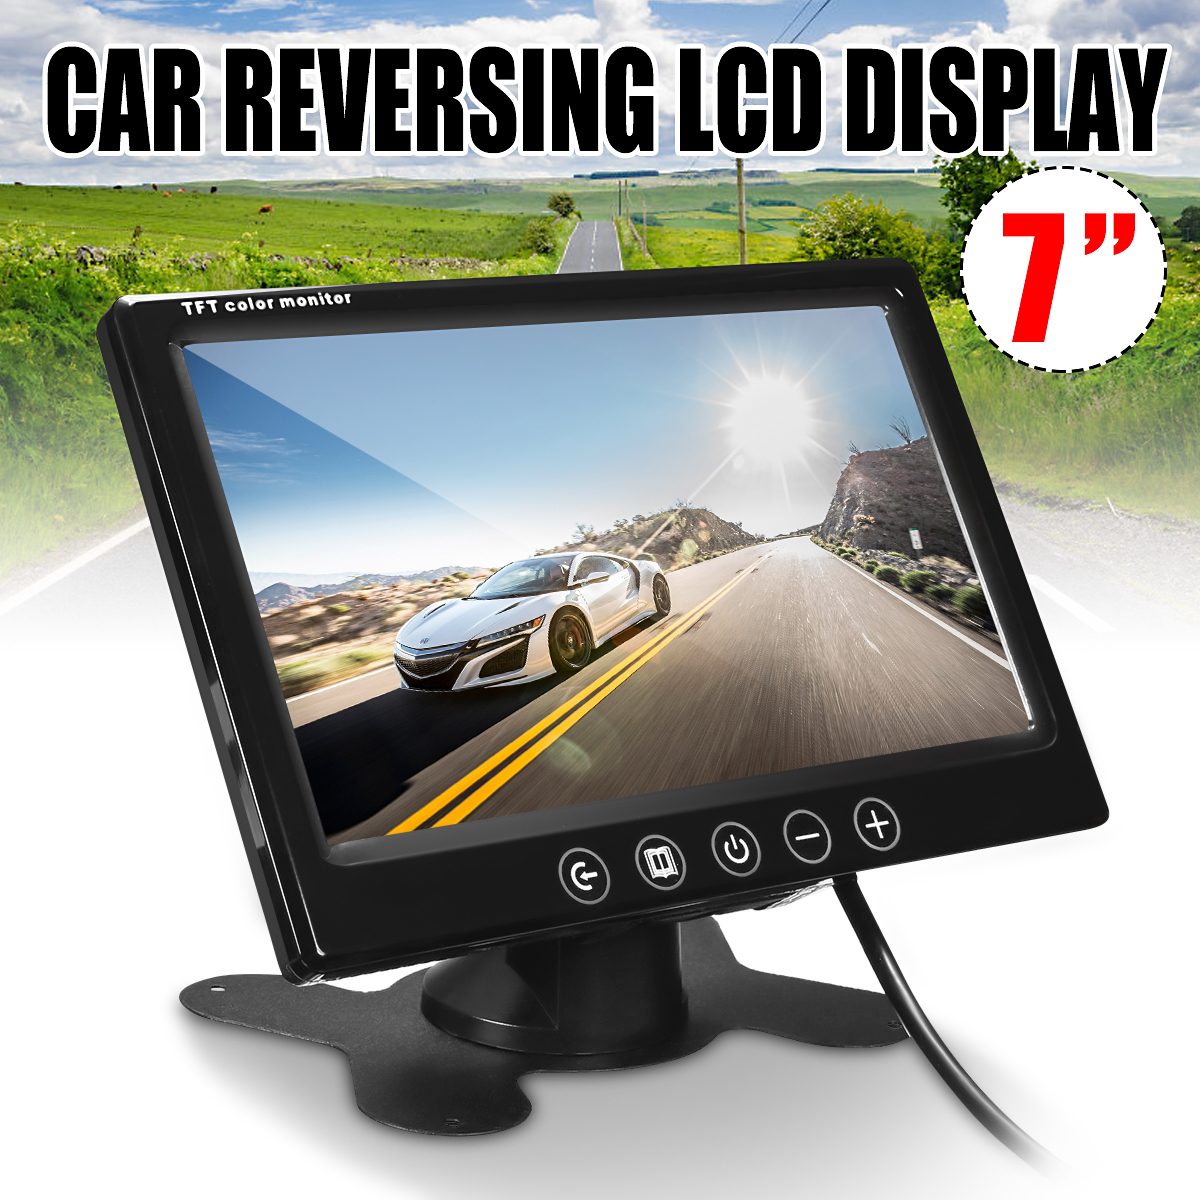 7 dual display built in quad combination lcd car monitor 4ch video input style parking dashboard for truck car rear view camera 7 Inch Split Screen Quad Monitor 4CH Video Input Windshield Style Parking Dashboard for Car Rear View Camera Car-styling